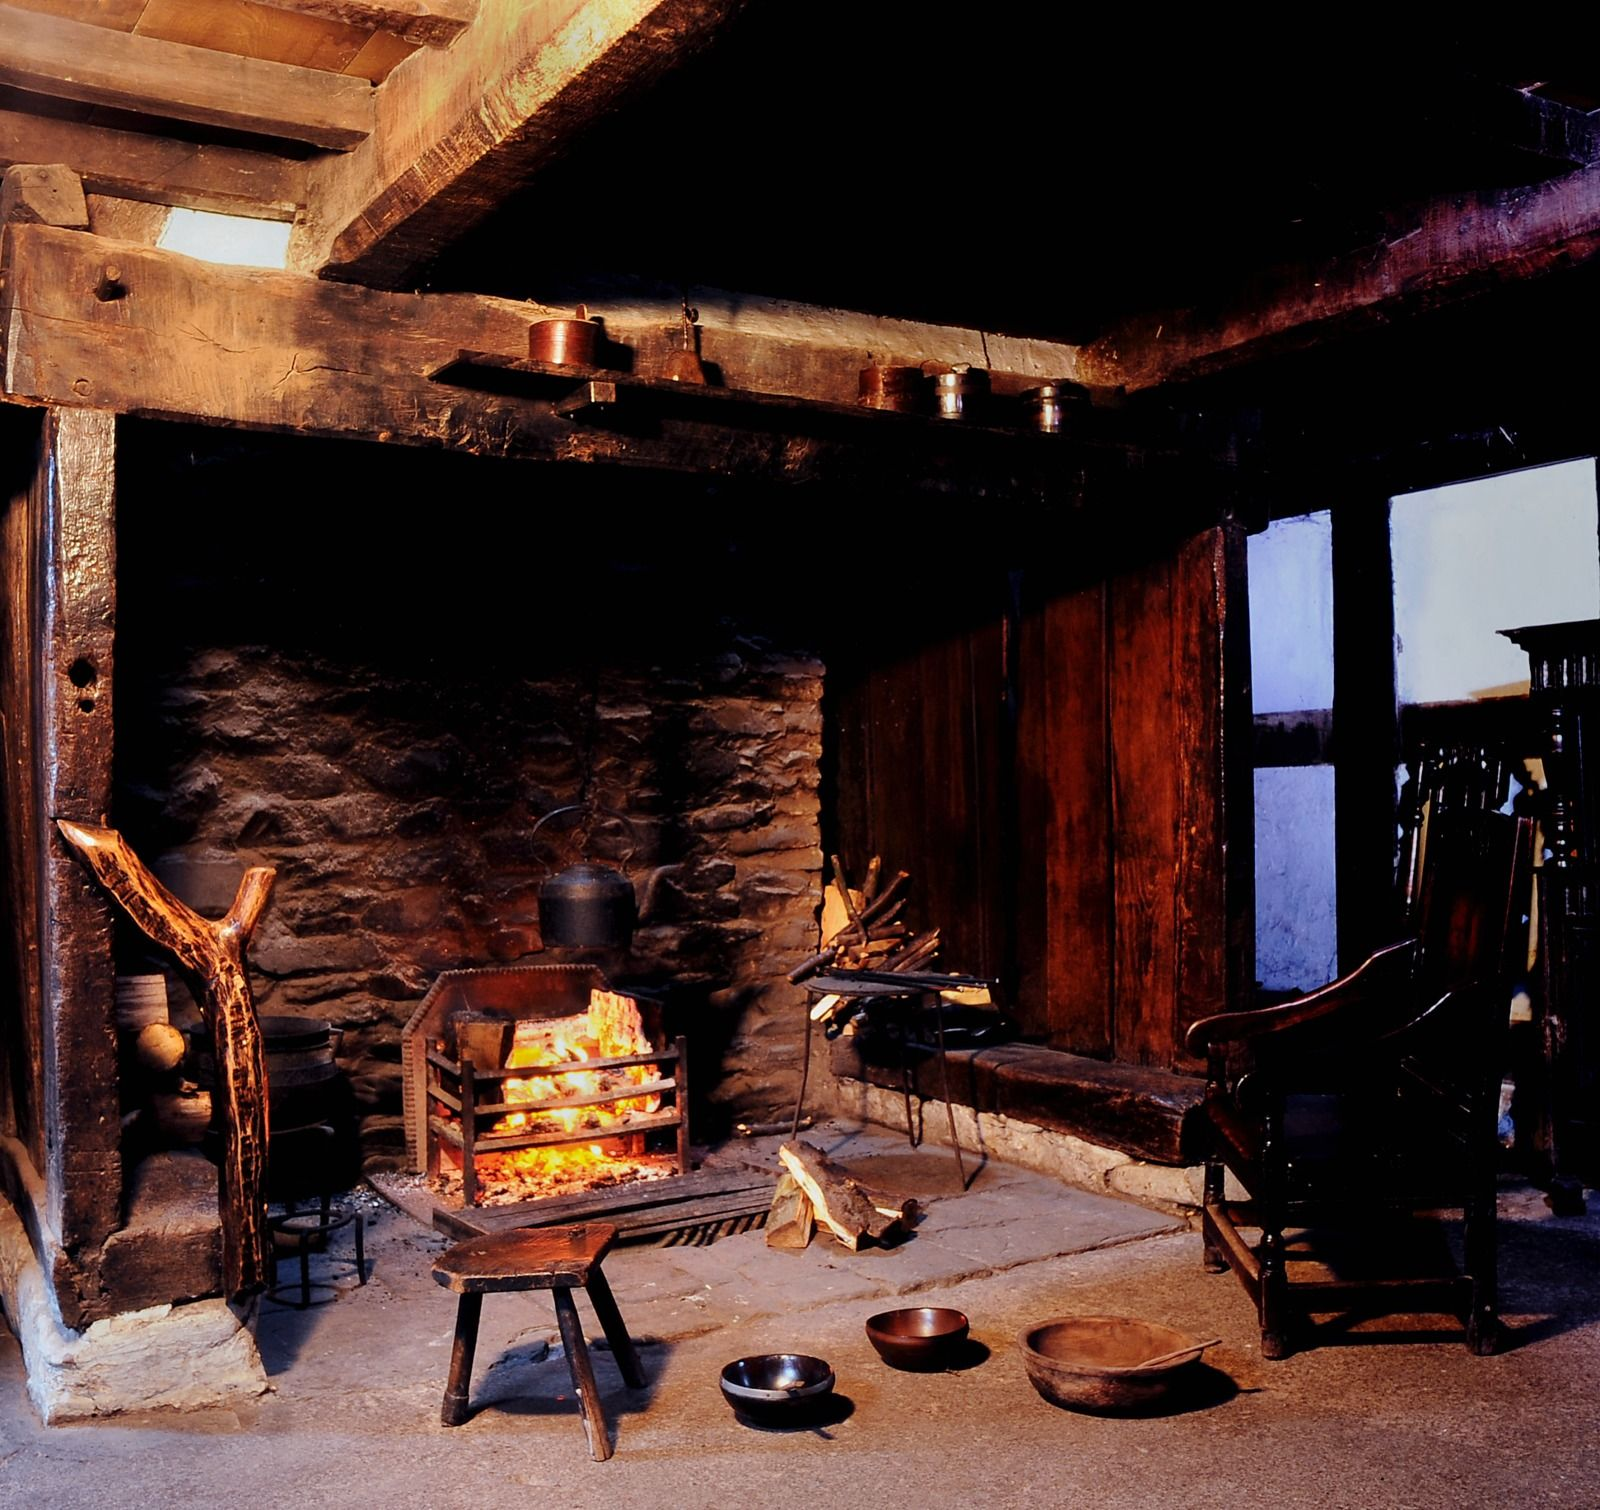 Interior view of Abernodwydd Farmhouse at St Fagans National Museum of History